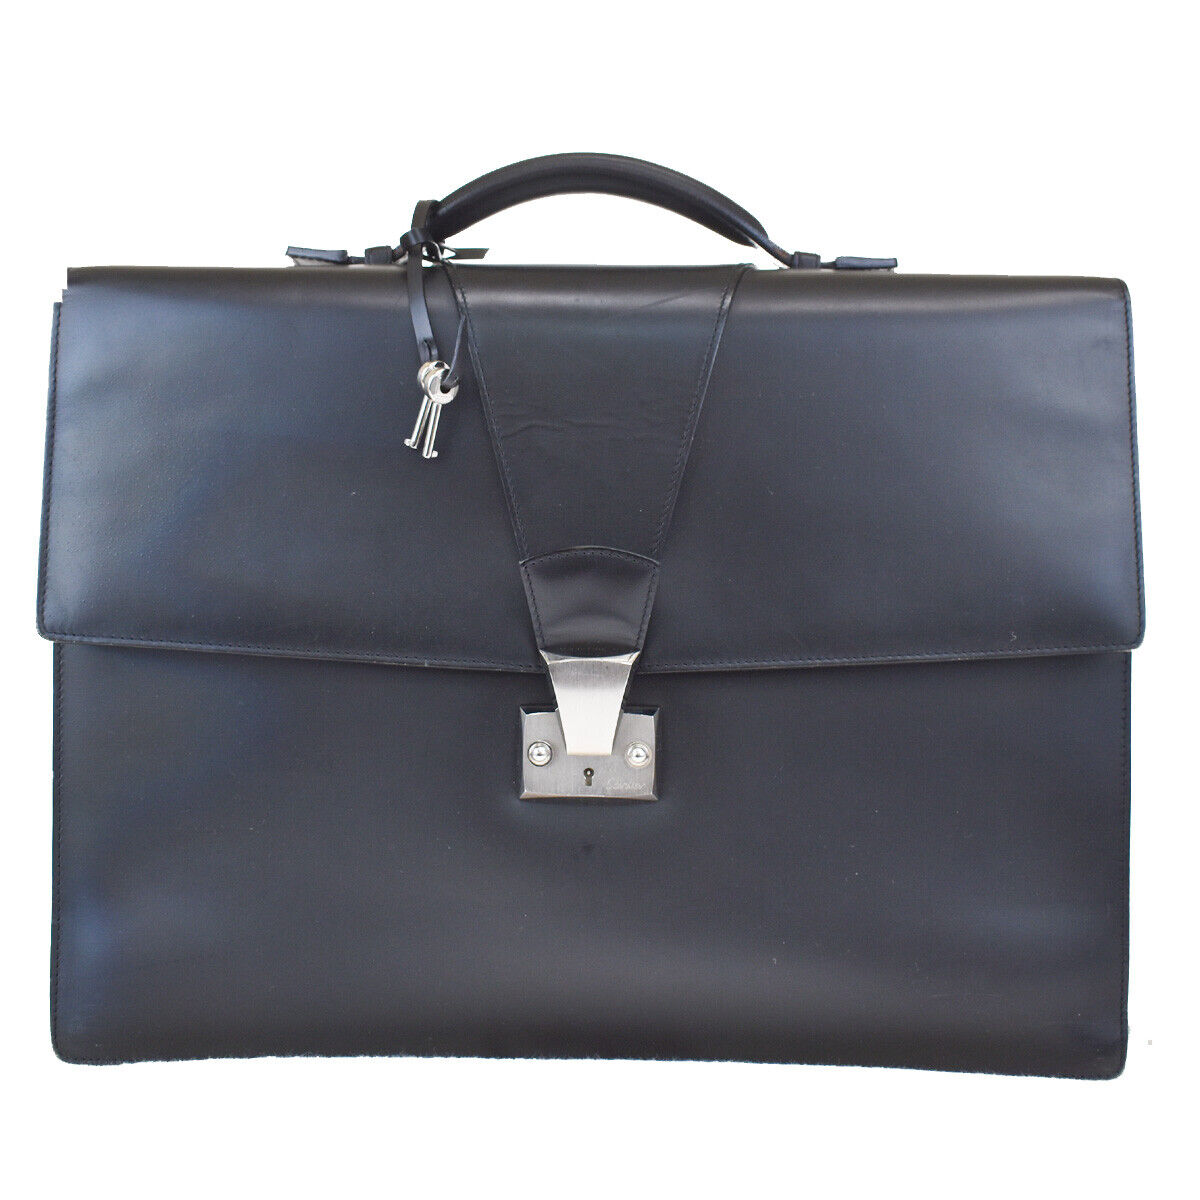 Authentic Cartier Pasha Logos Briefcase Hand Bag Leather Black France 34MH093